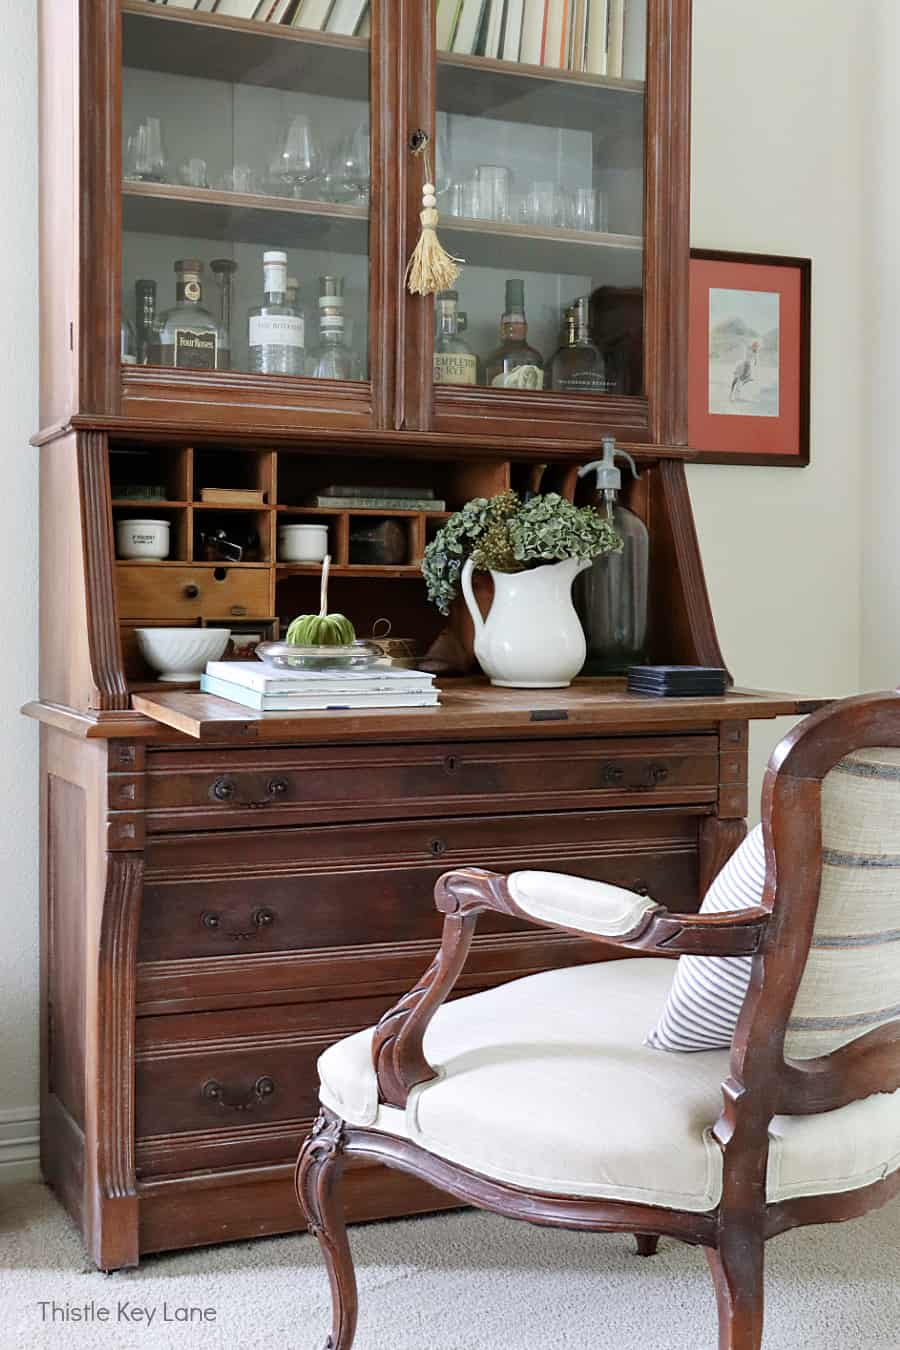 French style chair and secretary desk with glass doors.